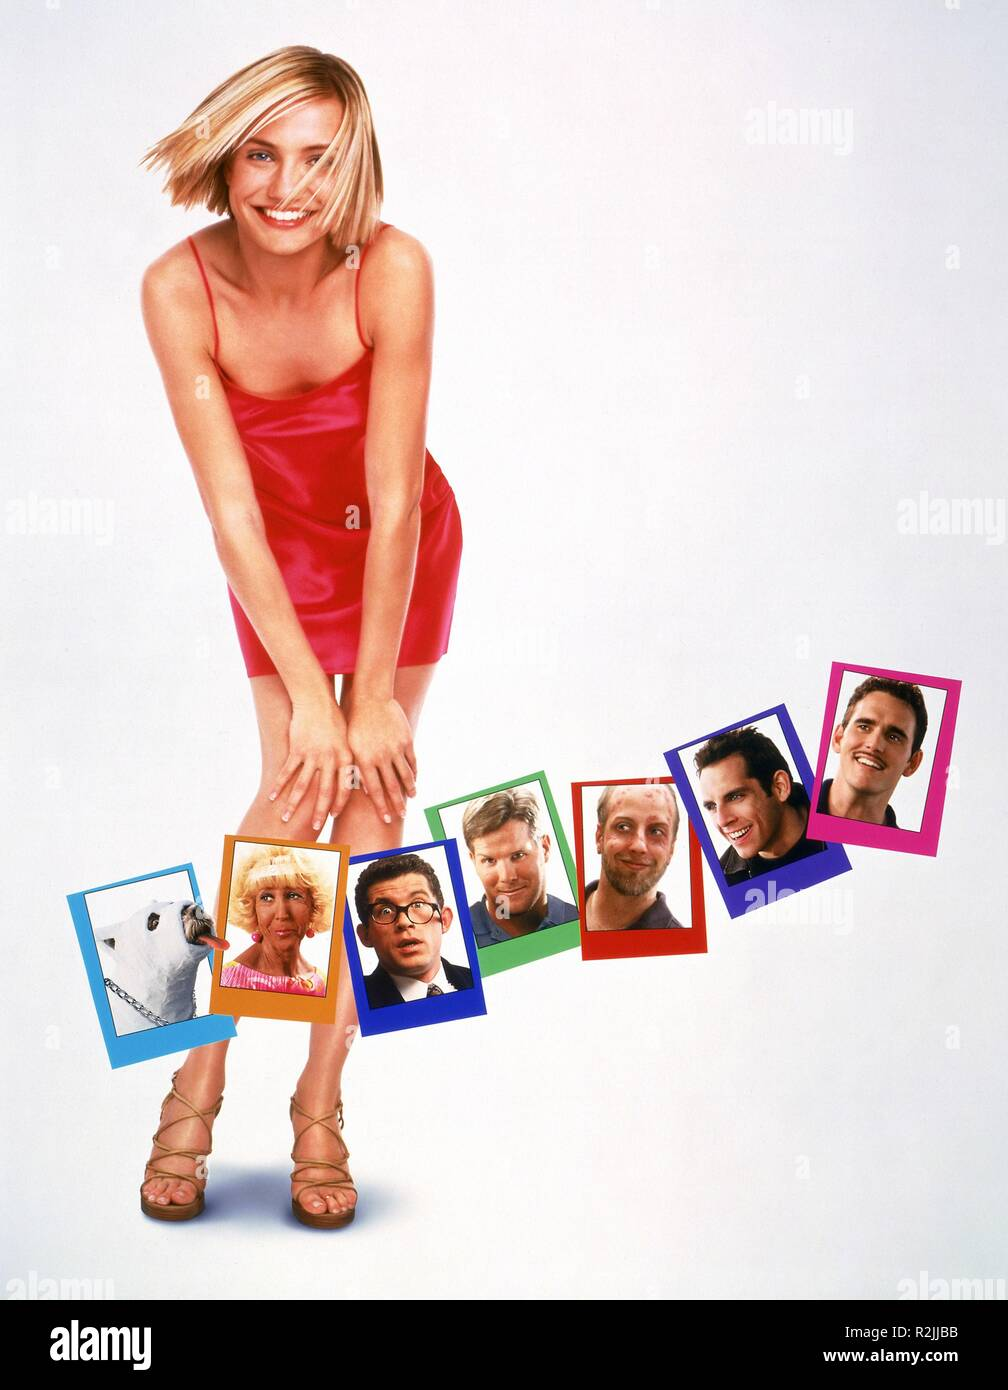 There's Something About Mary  Year : 1998  USA Director : Bobby Farrelly, Peter Farrelly Cameron Diaz Movie poster (creditless) - Stock Image